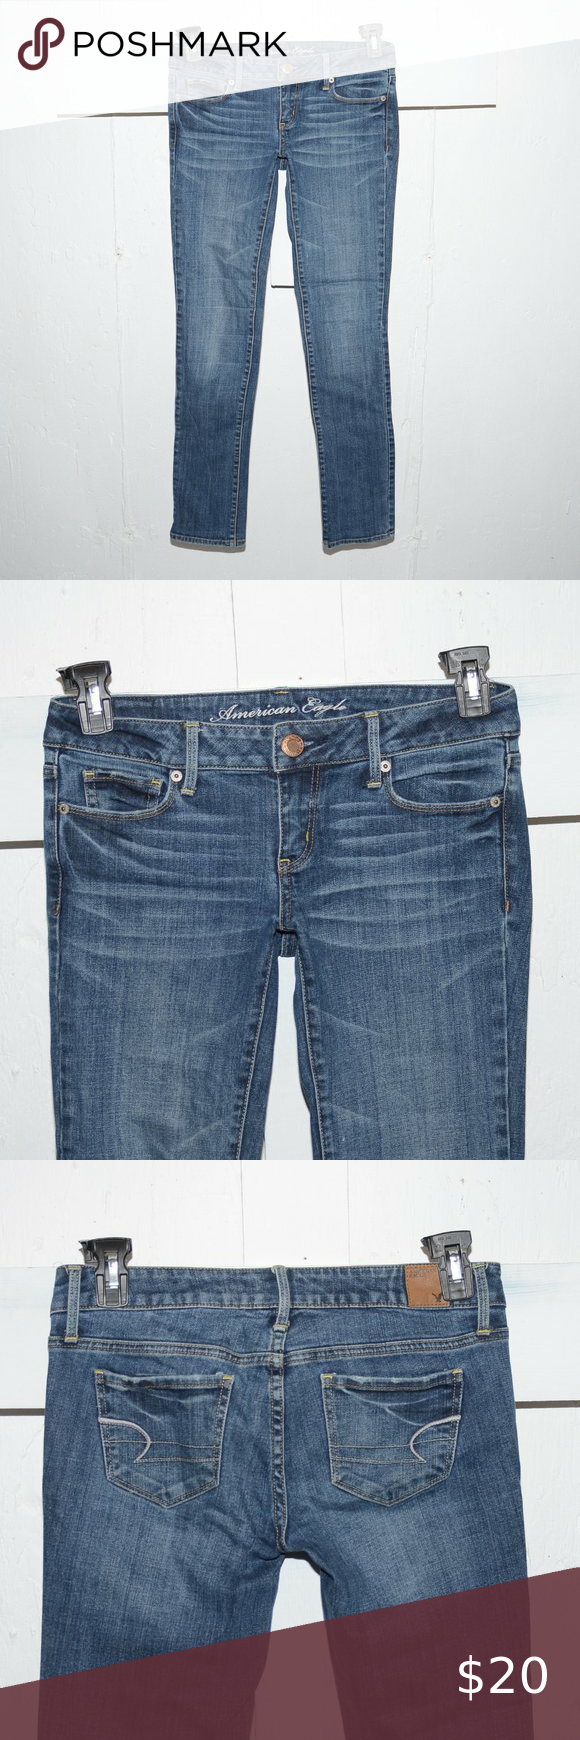 American Eagle Skinny Jeans Size 30 x 34 in 2020